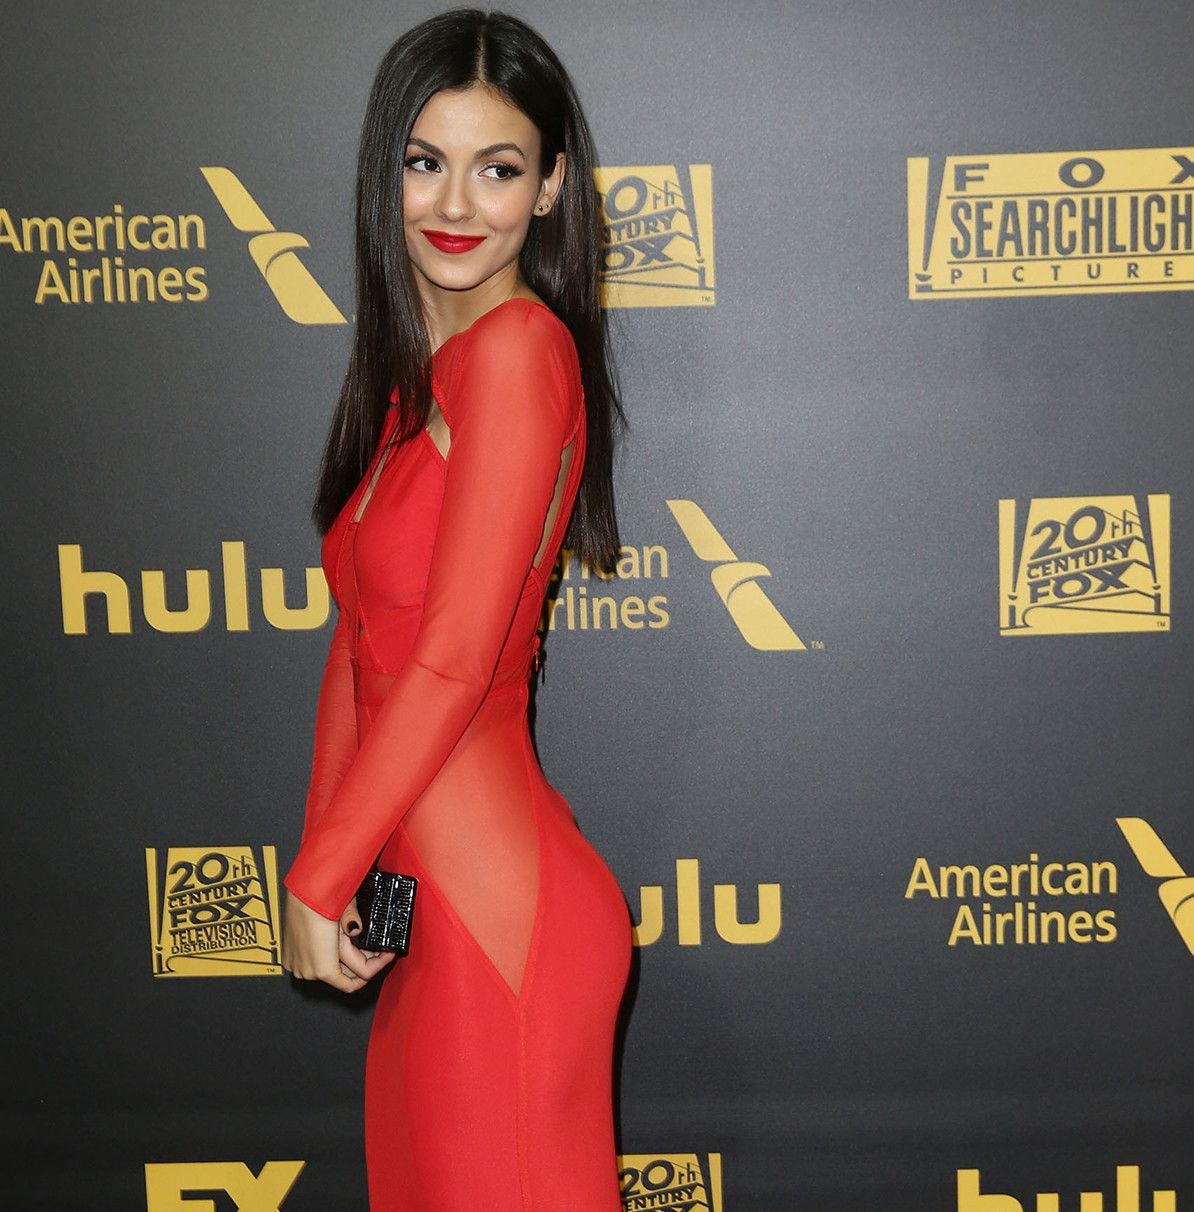 Download celebrities hd wallpapers in wide range of high resolutions for your pc desktop laptop and other mobile device pinterest celebrity